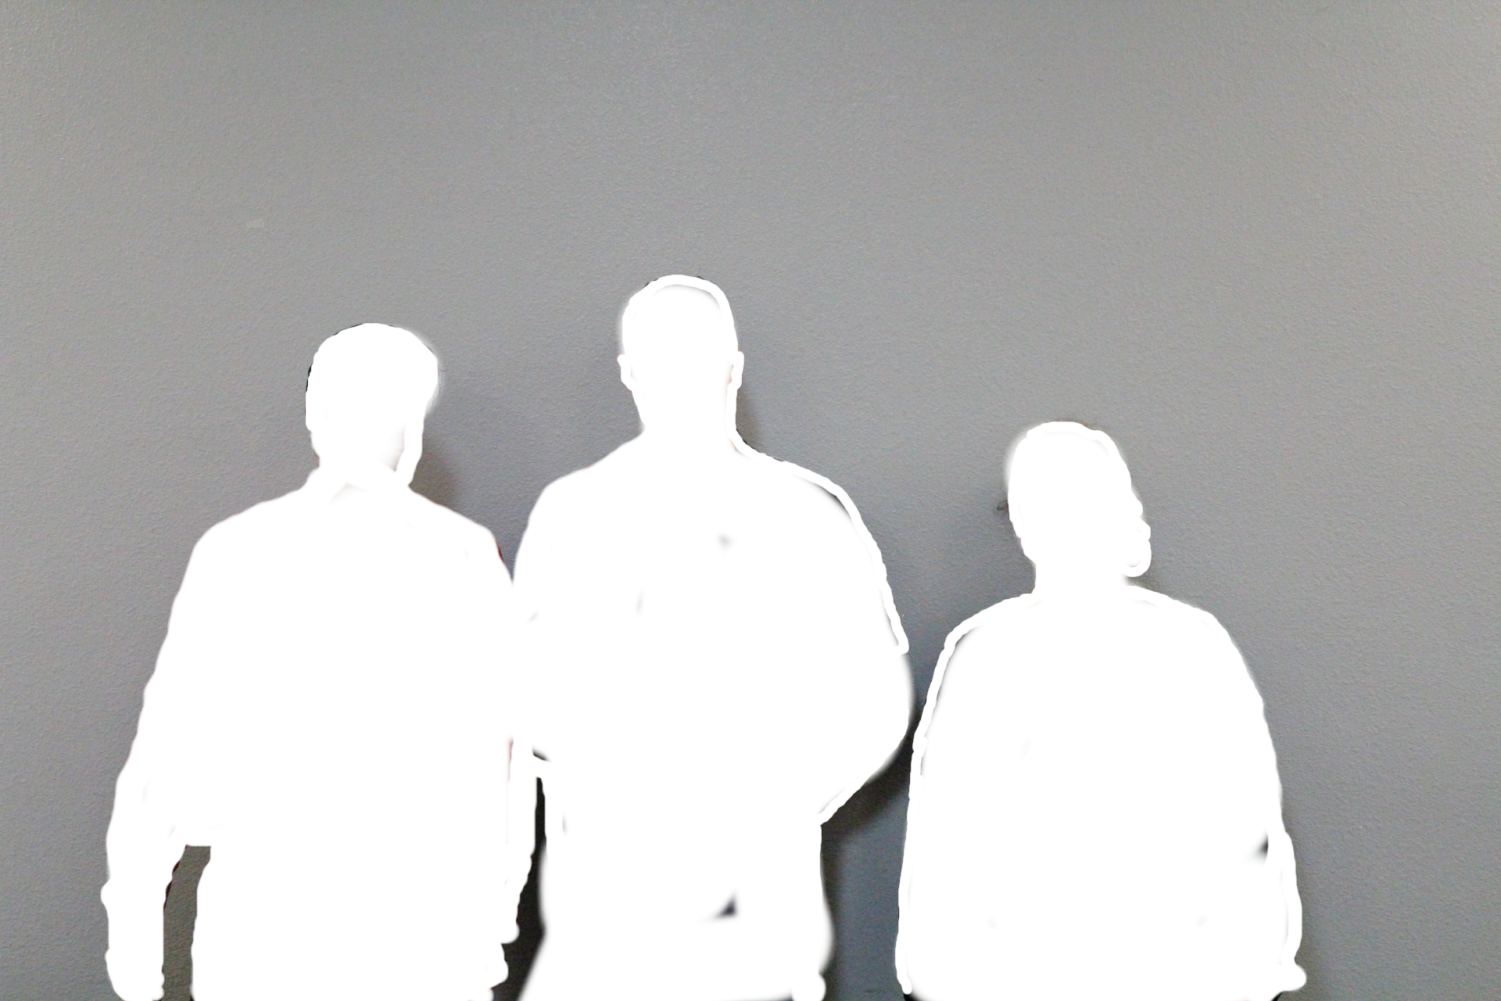 Our three mystery teachers got together for a photo op, but somehow our camera only detected the outline of their bodies.